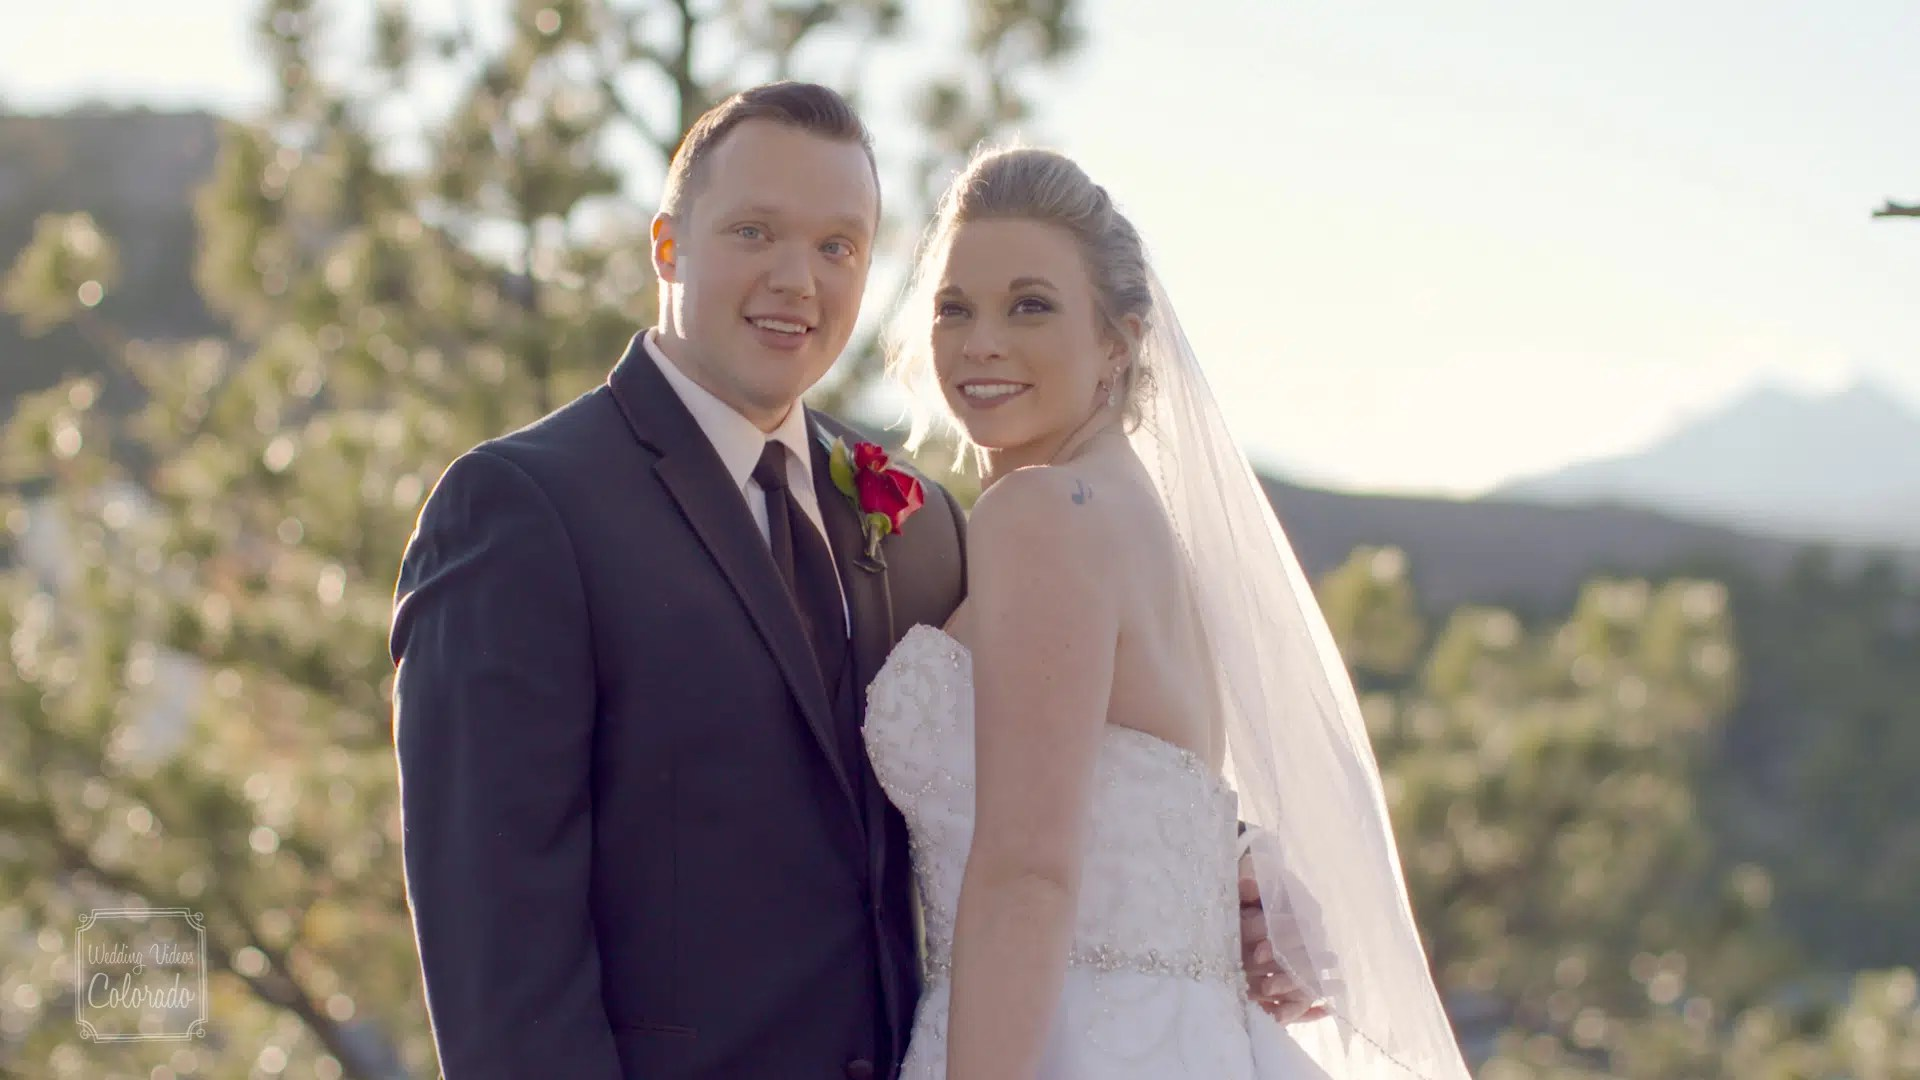 Jonathan & Christen | Lyons, Colorado | Wedding Highlights Video